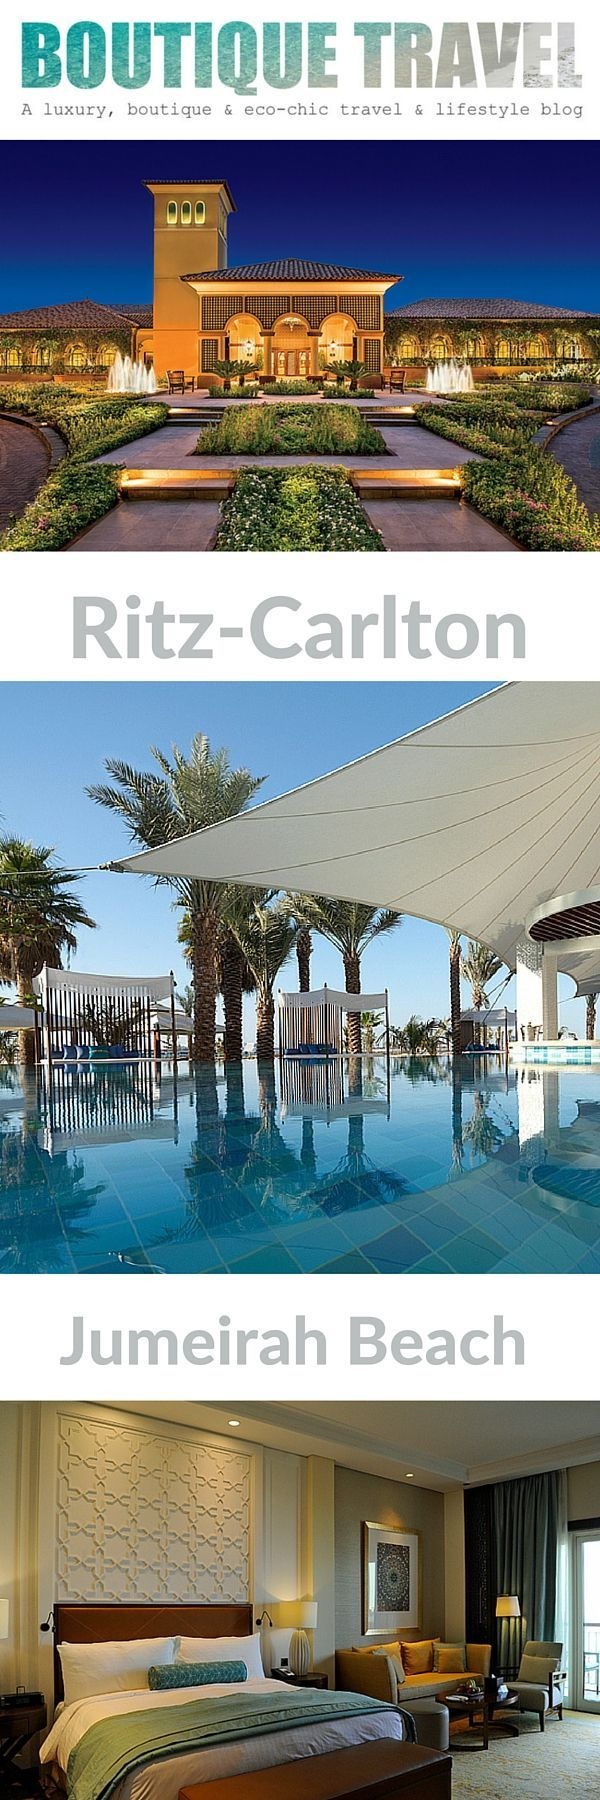 The Perfect combination of a beachside and city break, The Ritz-Carlton, Jumeriah Beach,Dubai. With a choice of 5 swimming pools, including one for adults only, numerous enticing dinning options, lush gardens, a private sandy beach, a luxurious spa and superb service, the elegant Ritz-Carlton, on the Arabian Gulf is one of the best hotels in Dubai and the perfect place to relax whether visiting this exciting city for business or pleasure.